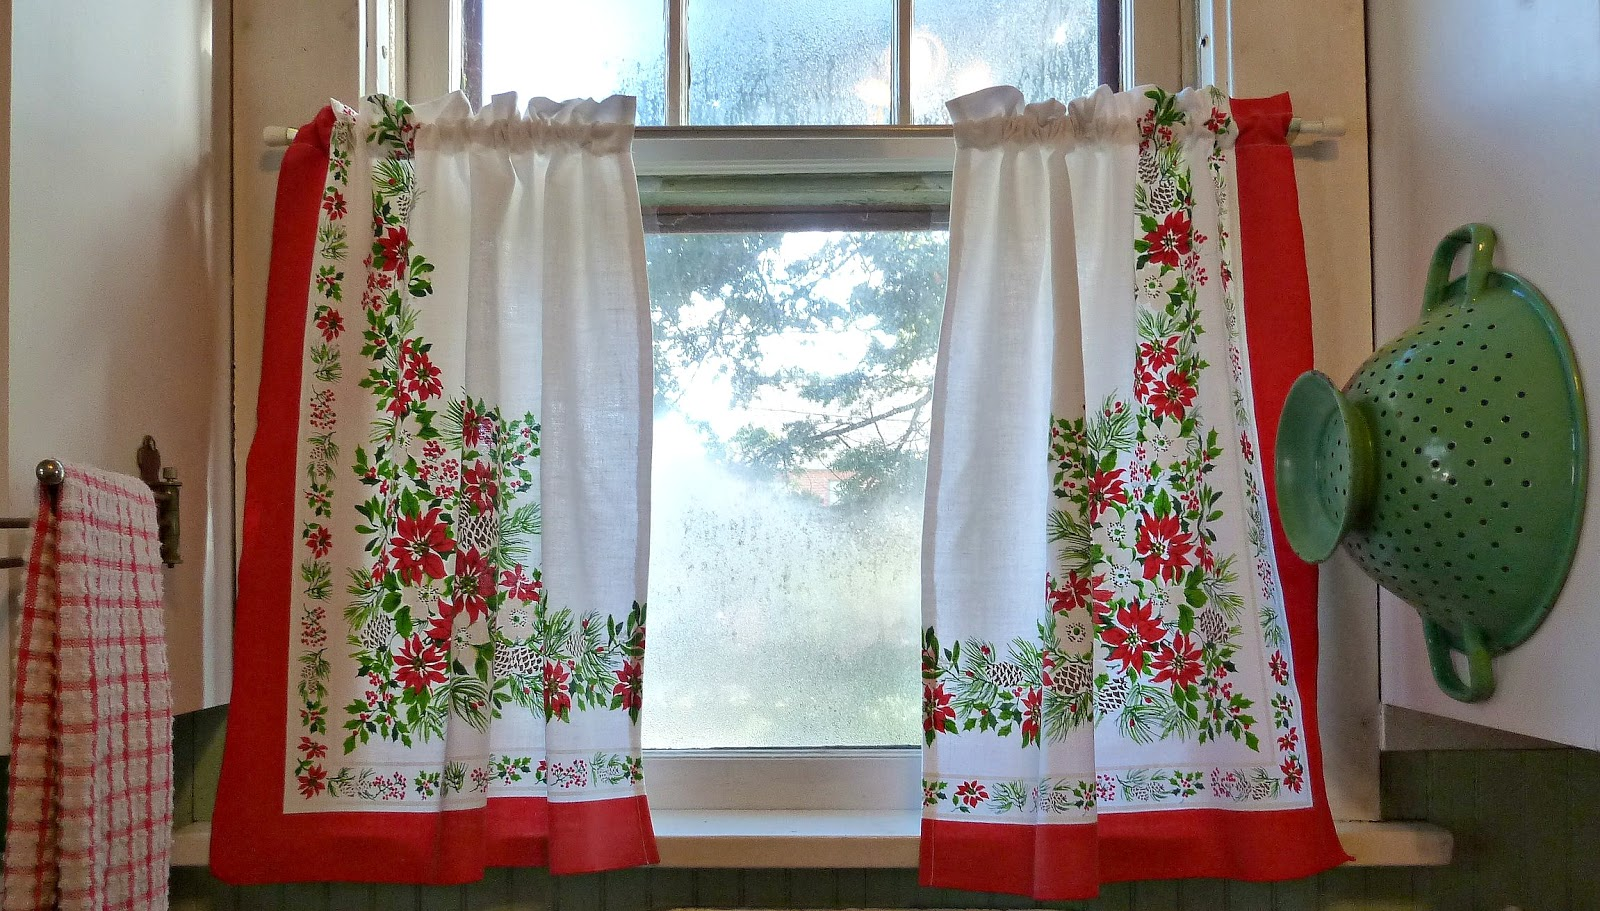 Can Valances Be Used Between Curtain Panels Instead Of Over